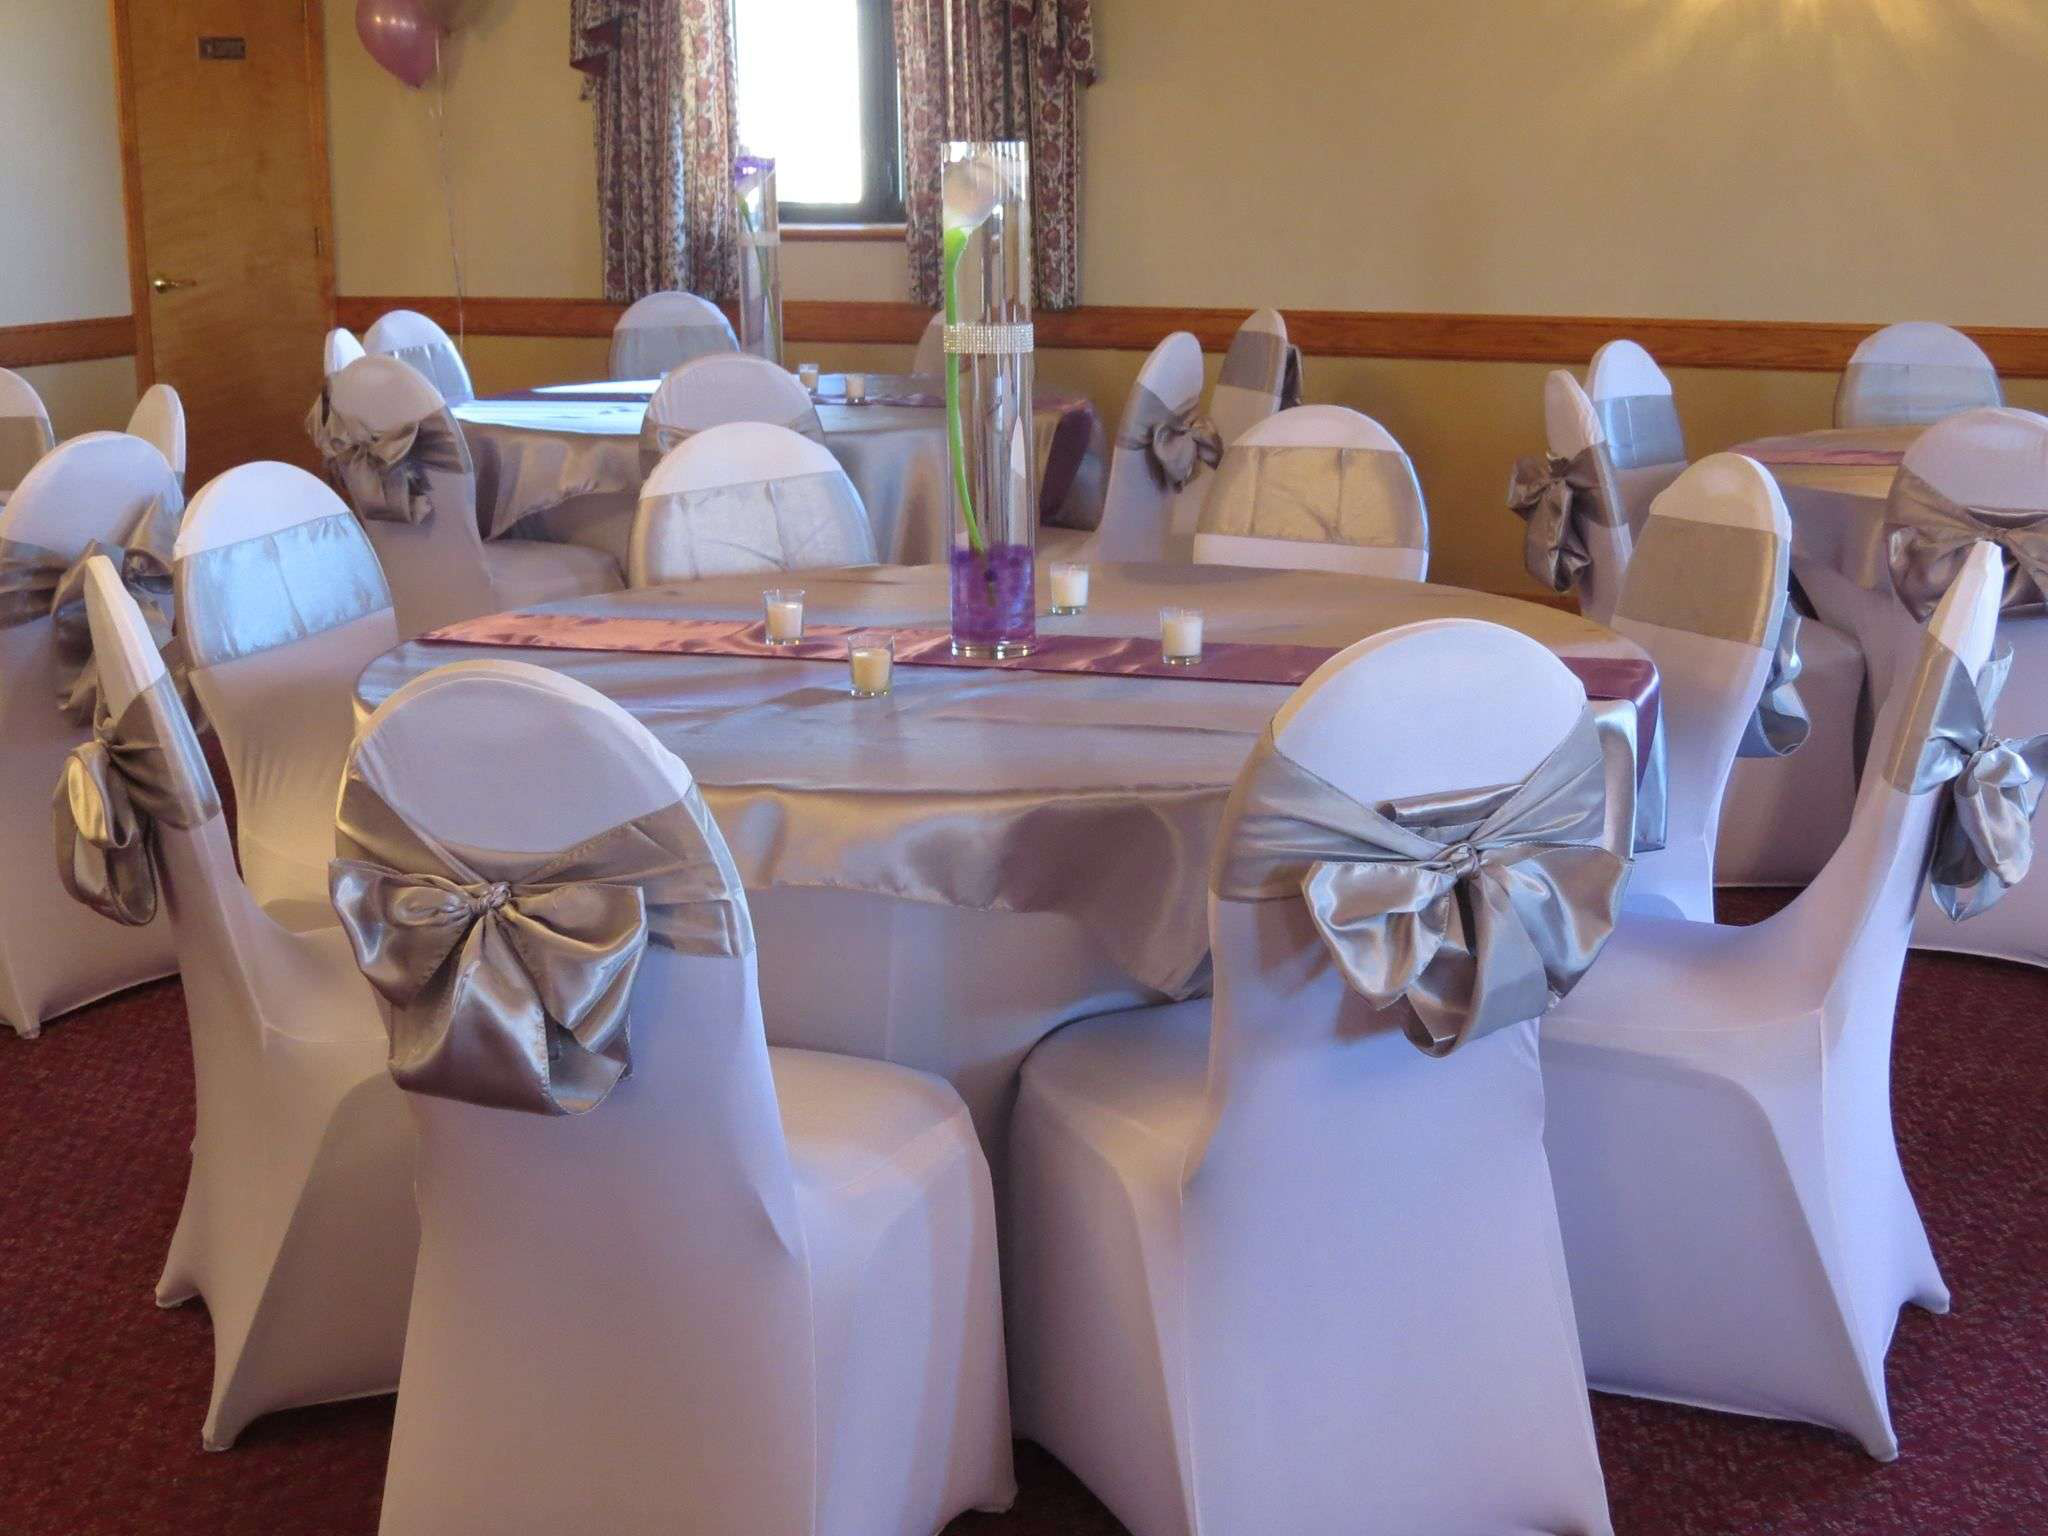 Different Colored Chair Satin Sashes And Their Corresponding Significance Chair Covers Wedding White Chair Covers Chair Covers